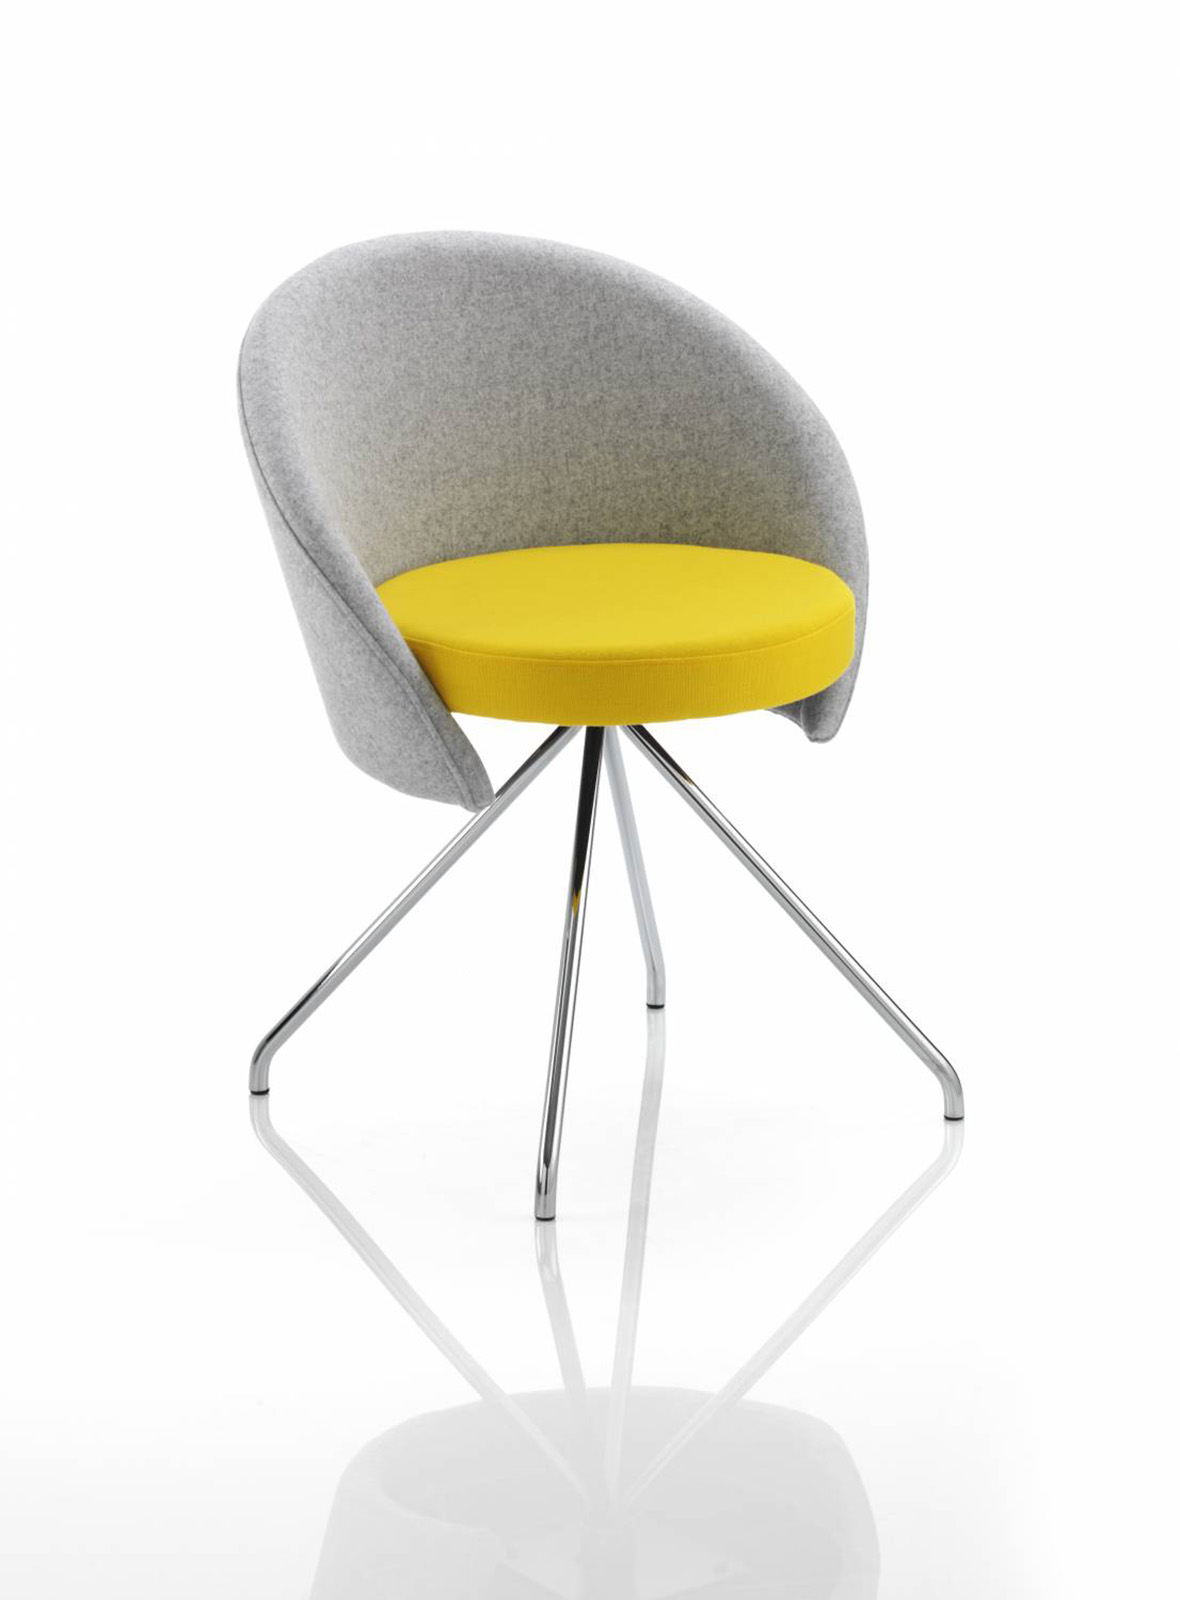 swivel chair, yellow swivel chair, upholstered swivel chair, chrome spider base